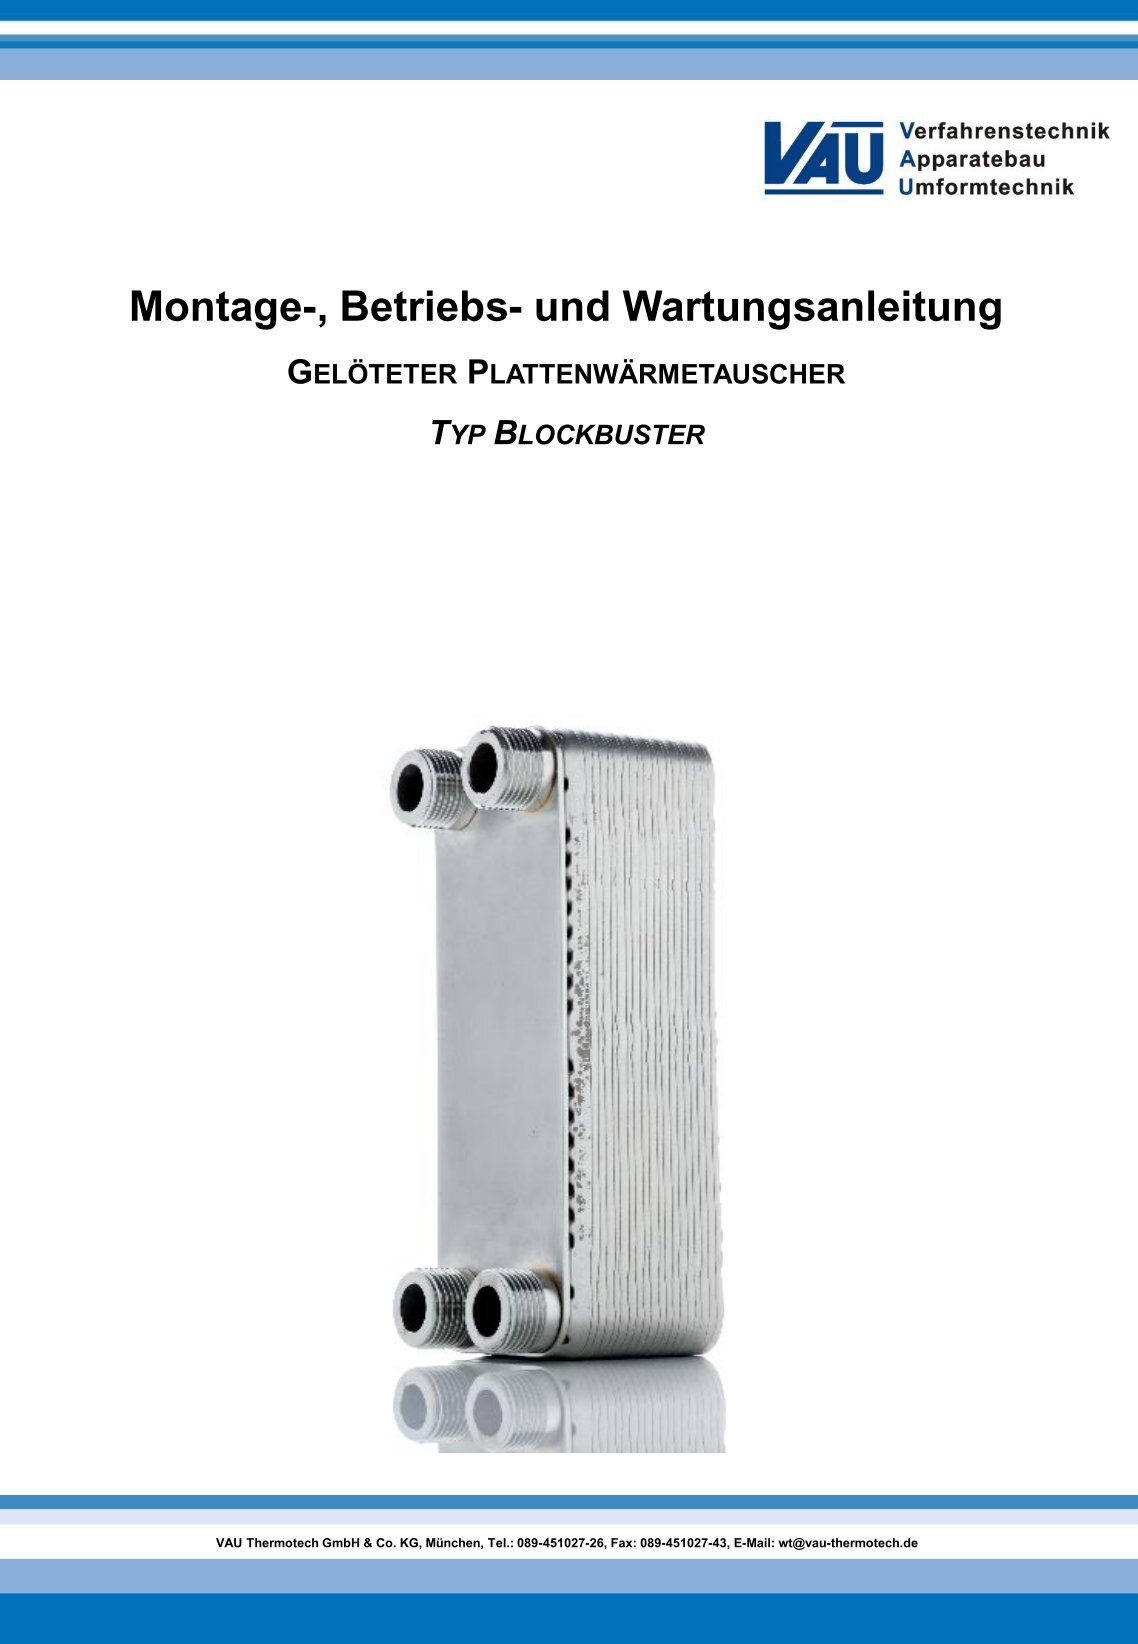 4 free Magazines from TORGEN.CH